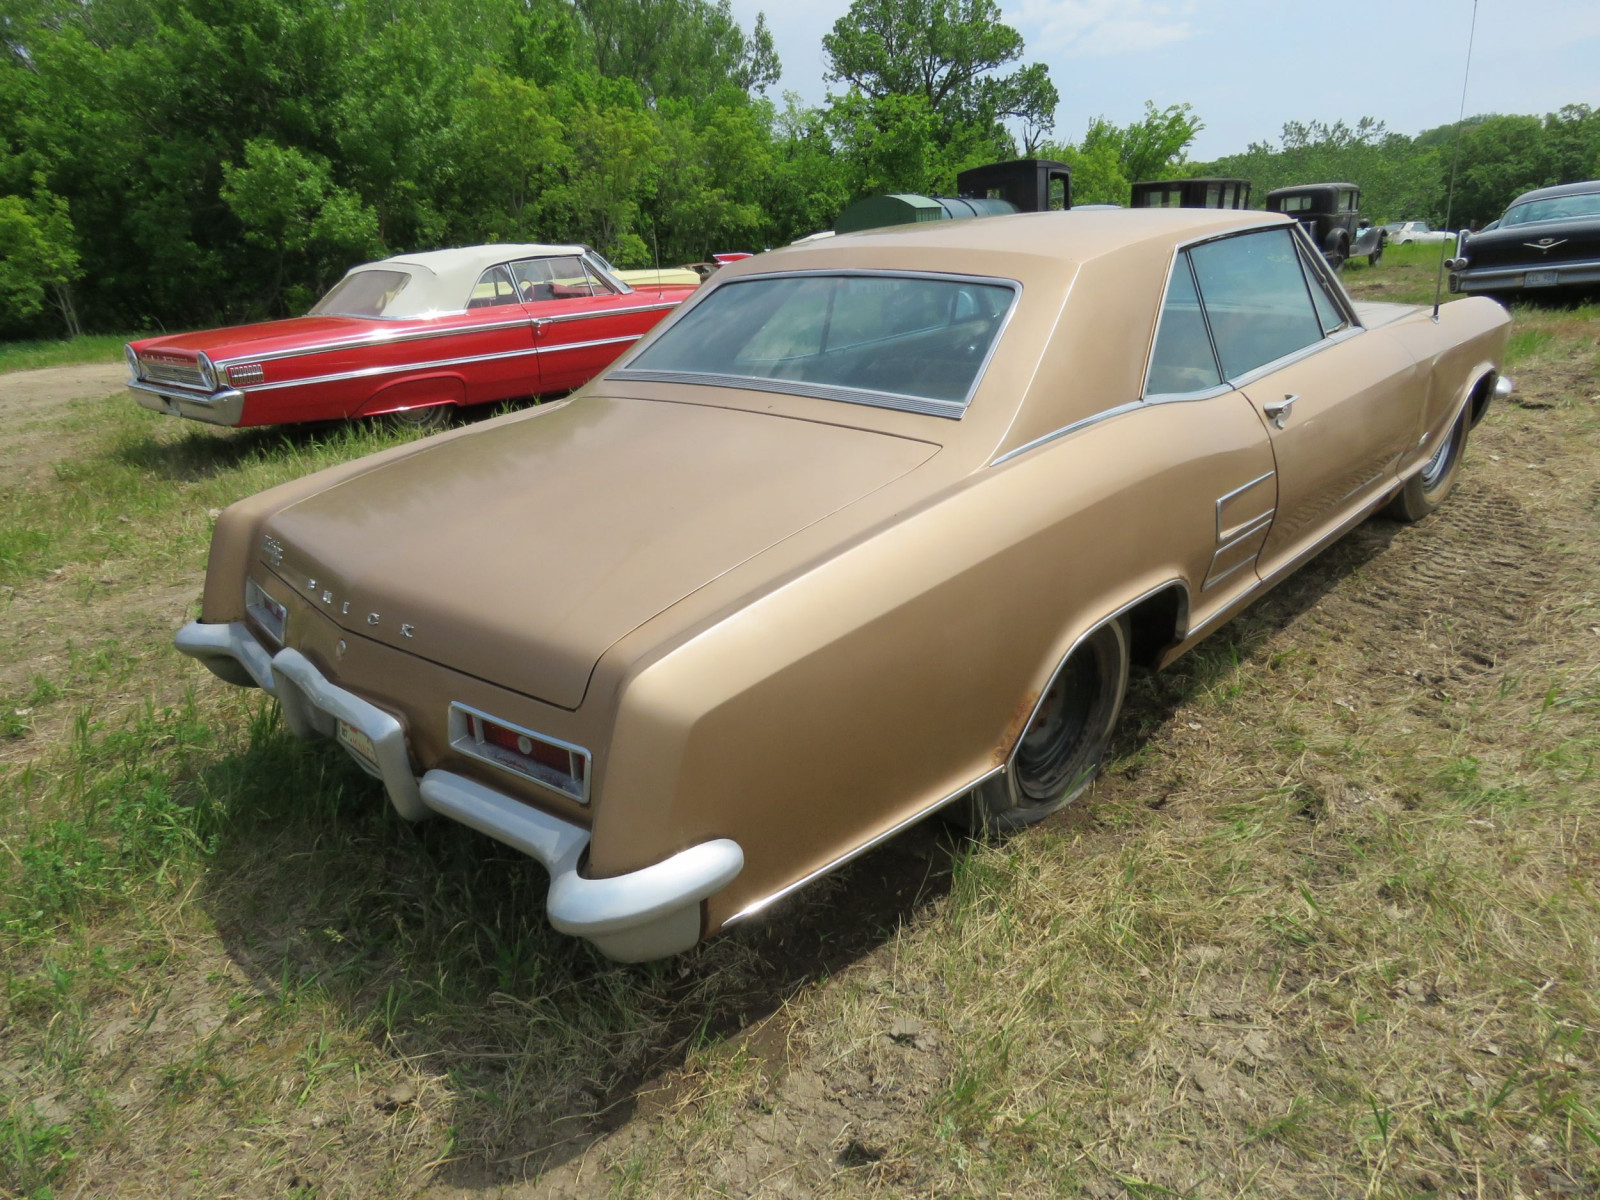 1967 Buick Riviera Coupe 7J1057263 - Image 7